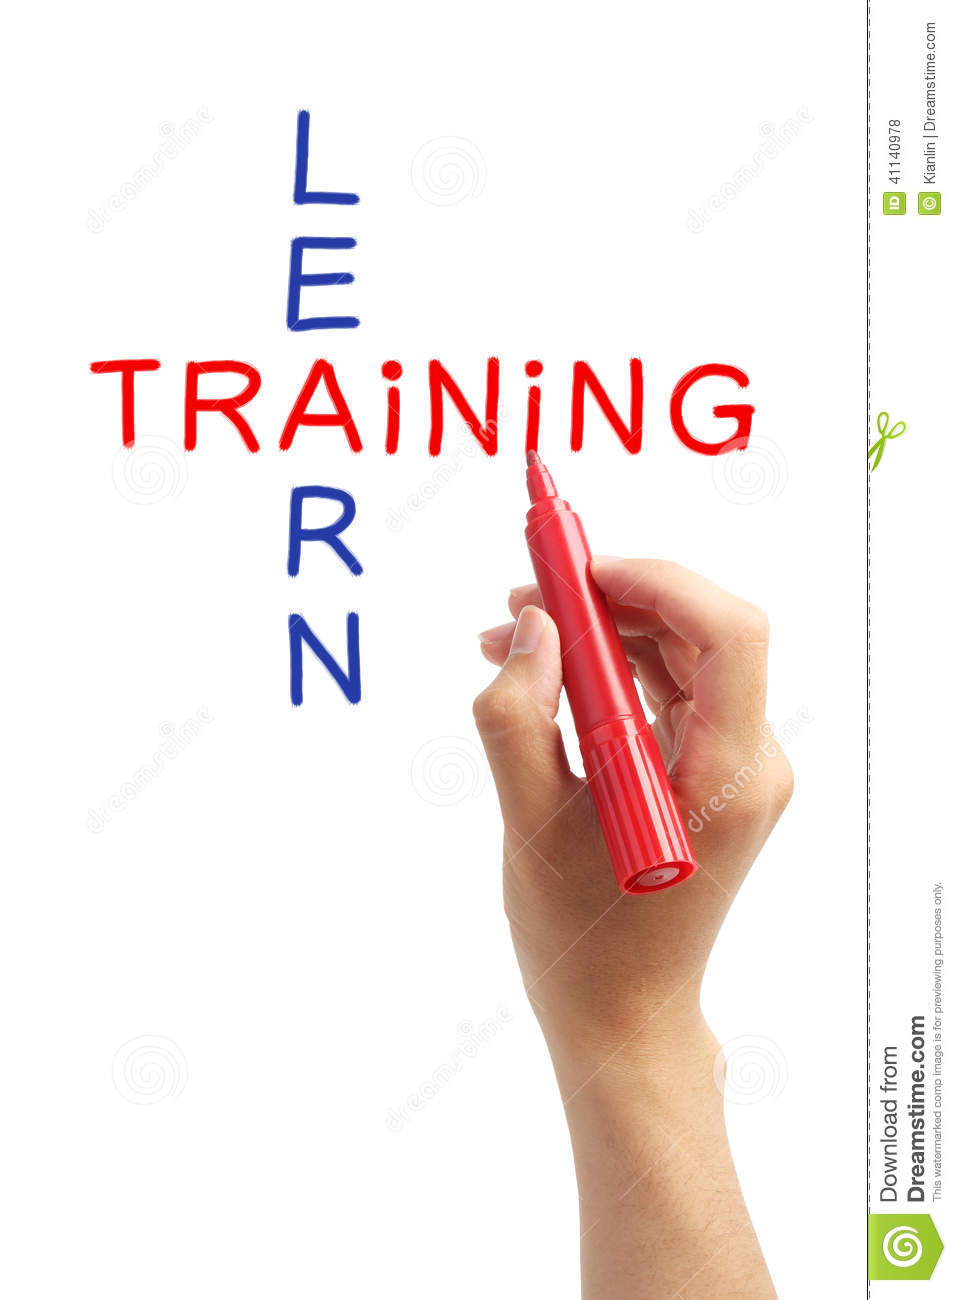 Training and Learn